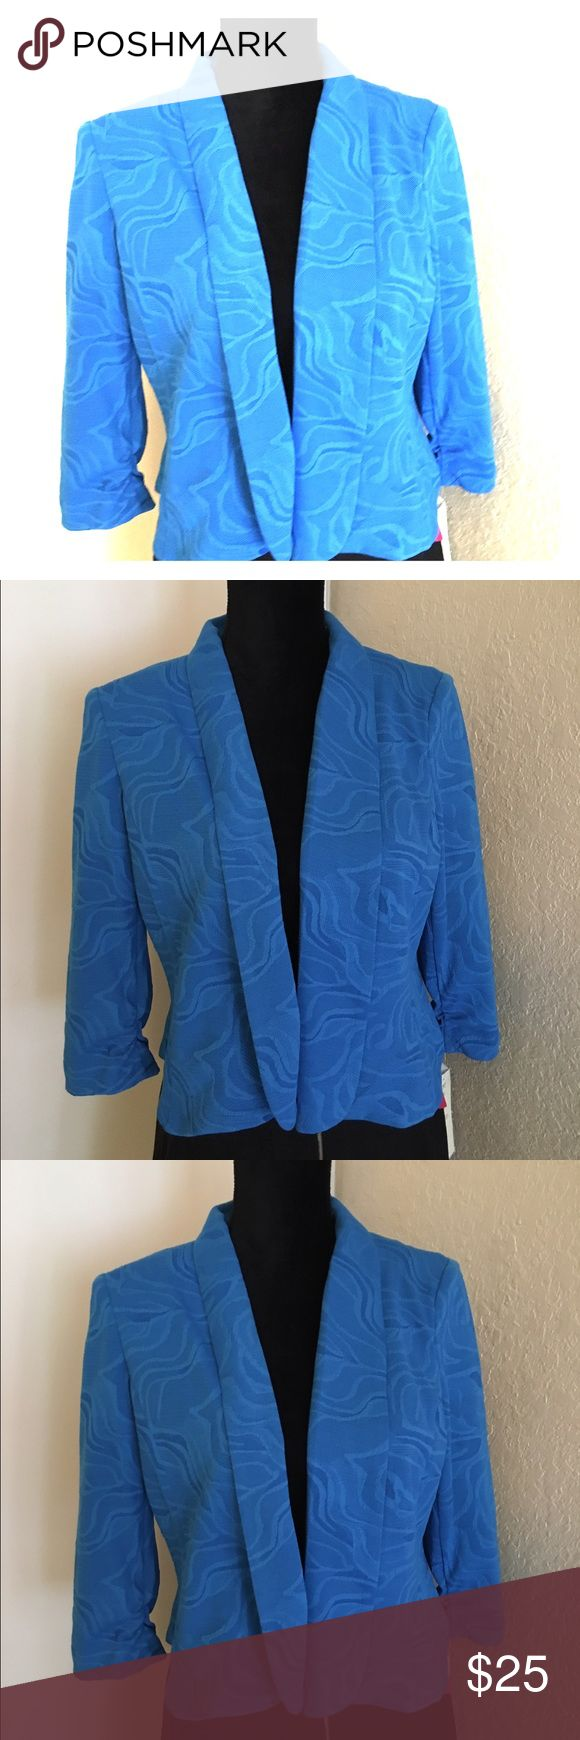 Stylish Blazer Beautiful Aqua Blazer. Fashionable and trendy. Blazer does not have any buttons. It's a fashion Blazer to throw over a light shirt or Blouse. Jackets & Coats Blazers